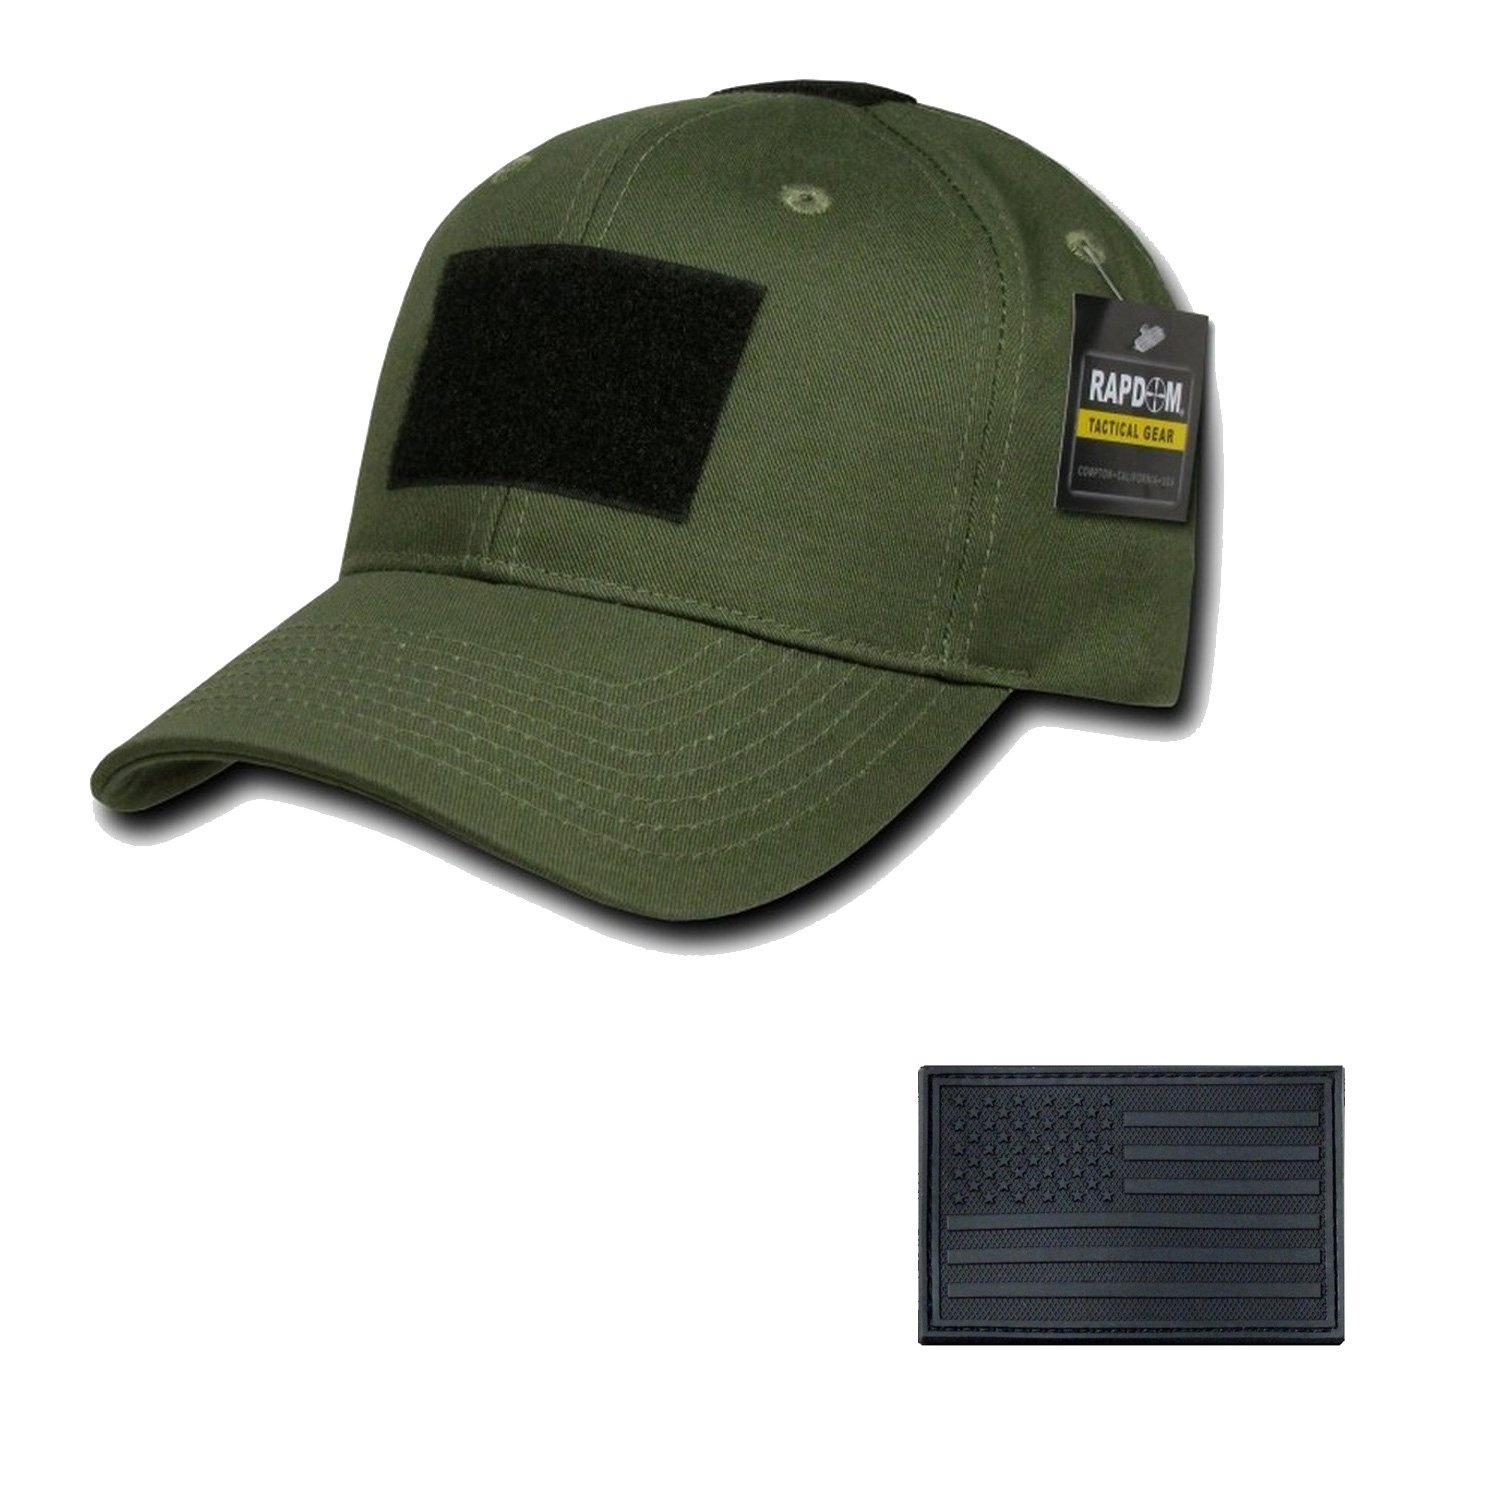 RAPDOM Genuine Tactical Constructed Ball Operator Cap Olive Caps with Free Patch (Olive, USA Flag Black Patch) by RAPDOM